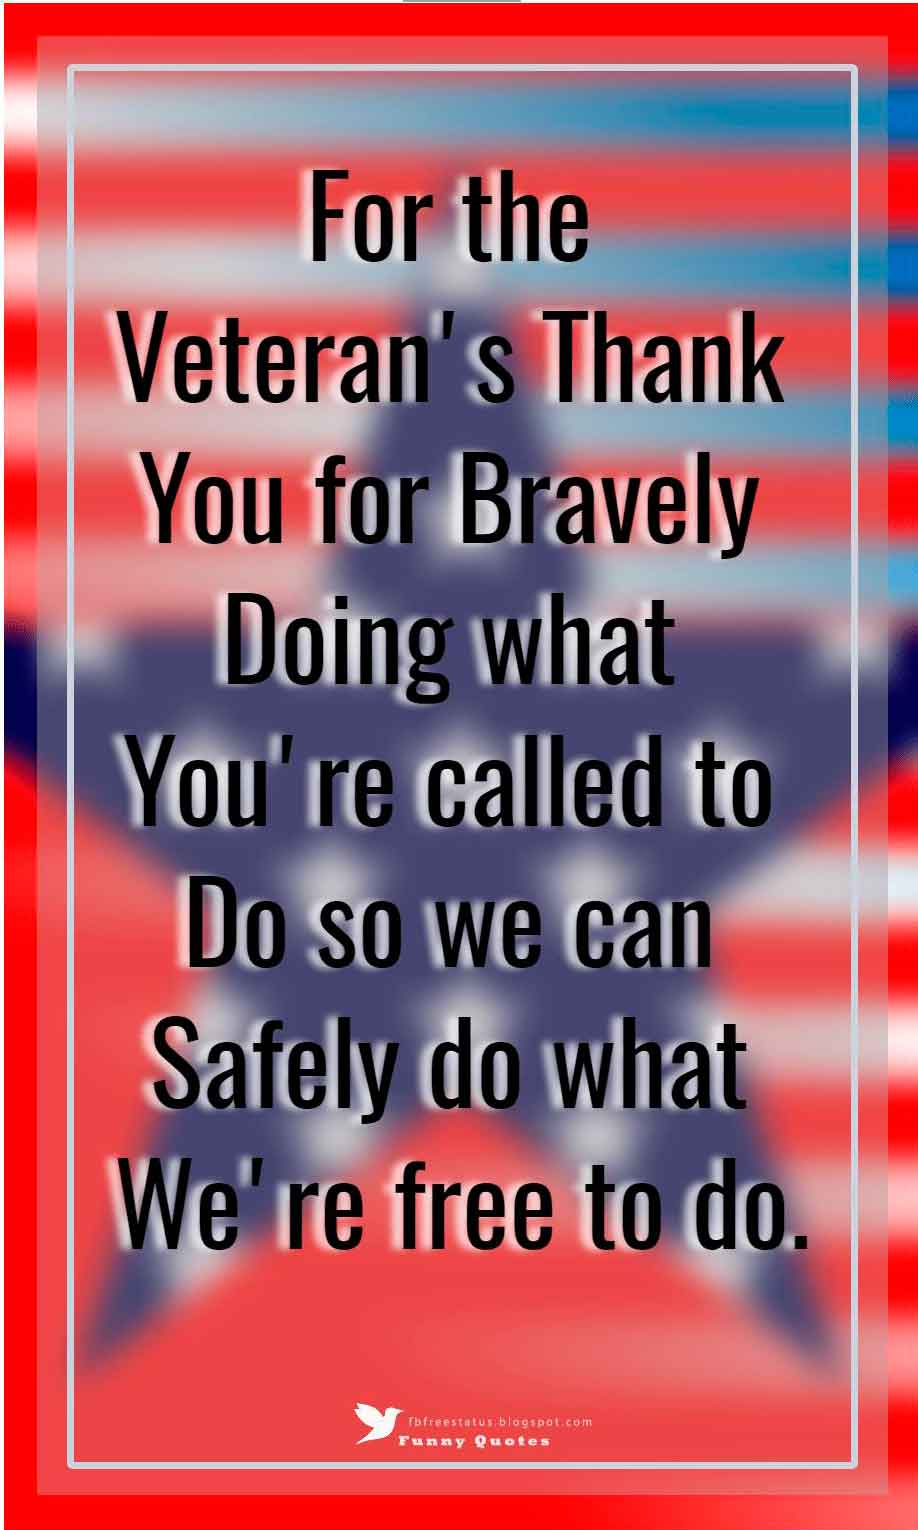 For the veteran's thank you for bravely doing what you're called to do so we can safely do what we're free to do.